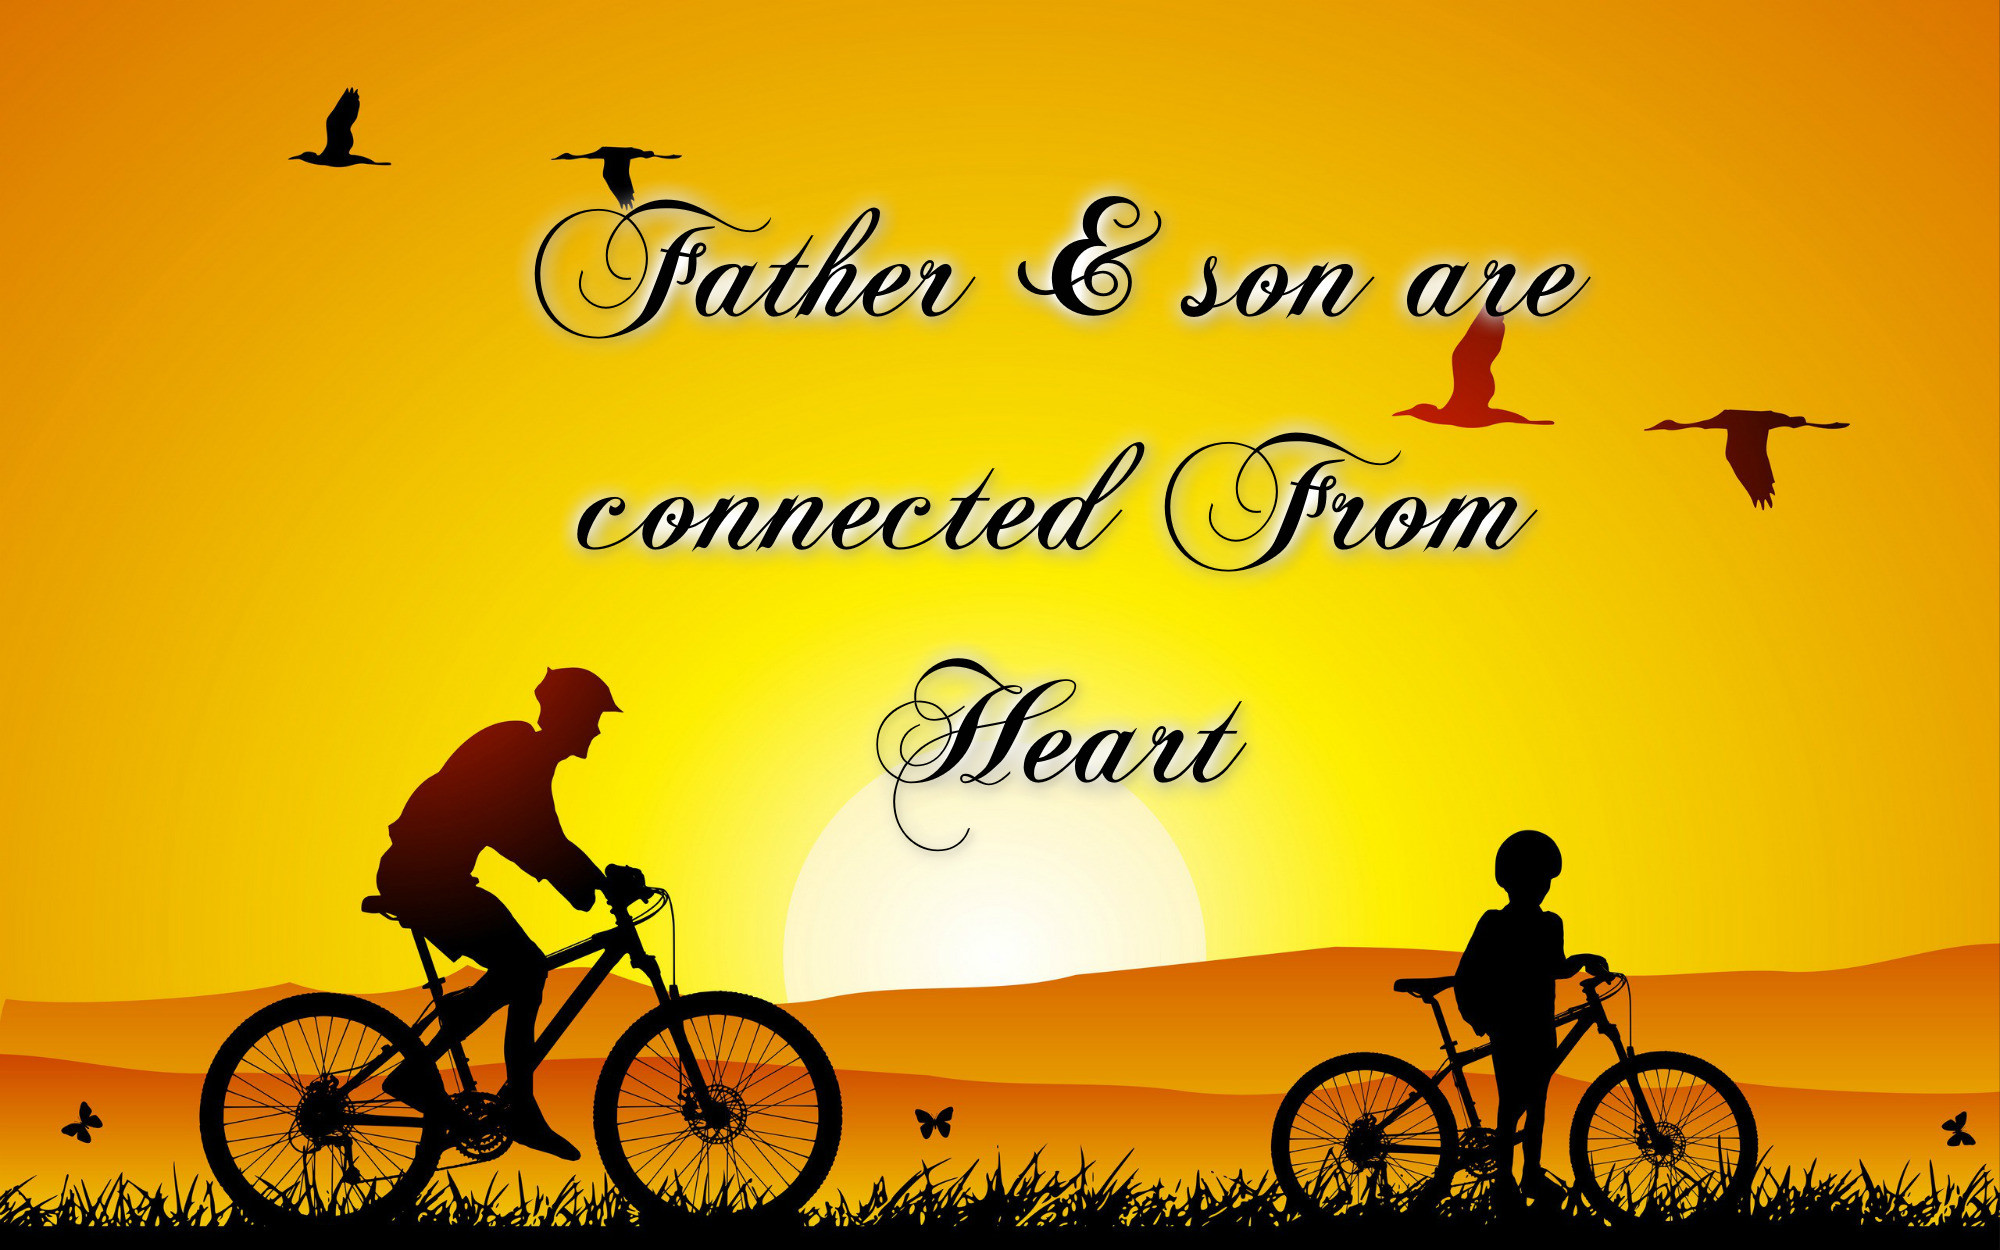 Best Wallpaper Birthday Father - 1176184-best-today-is-my-birthday-wallpaper-2000x1250-large-resolution  Perfect Image Reference_184012.jpg